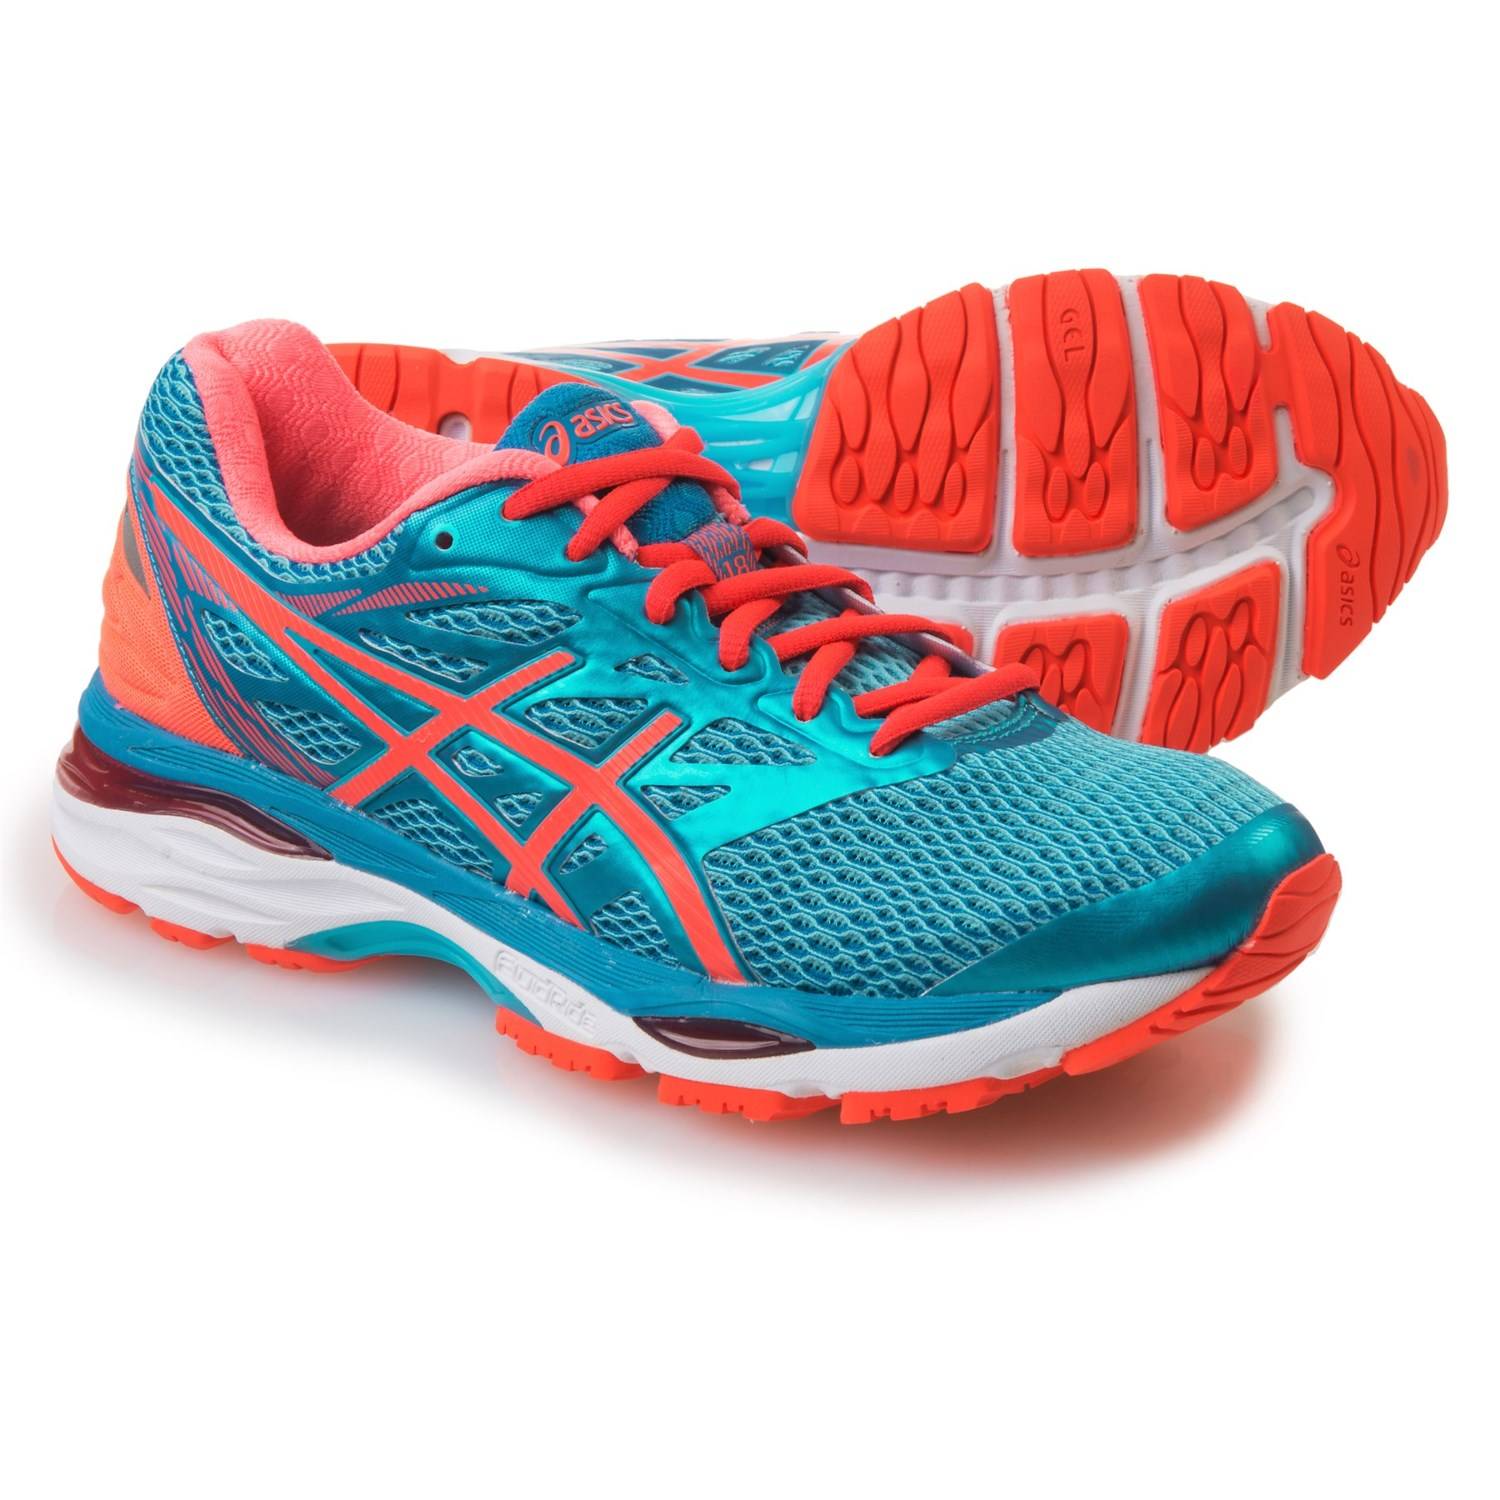 ASICS GEL-Cumulus 18 Running Shoes (For Women) - Save 63%